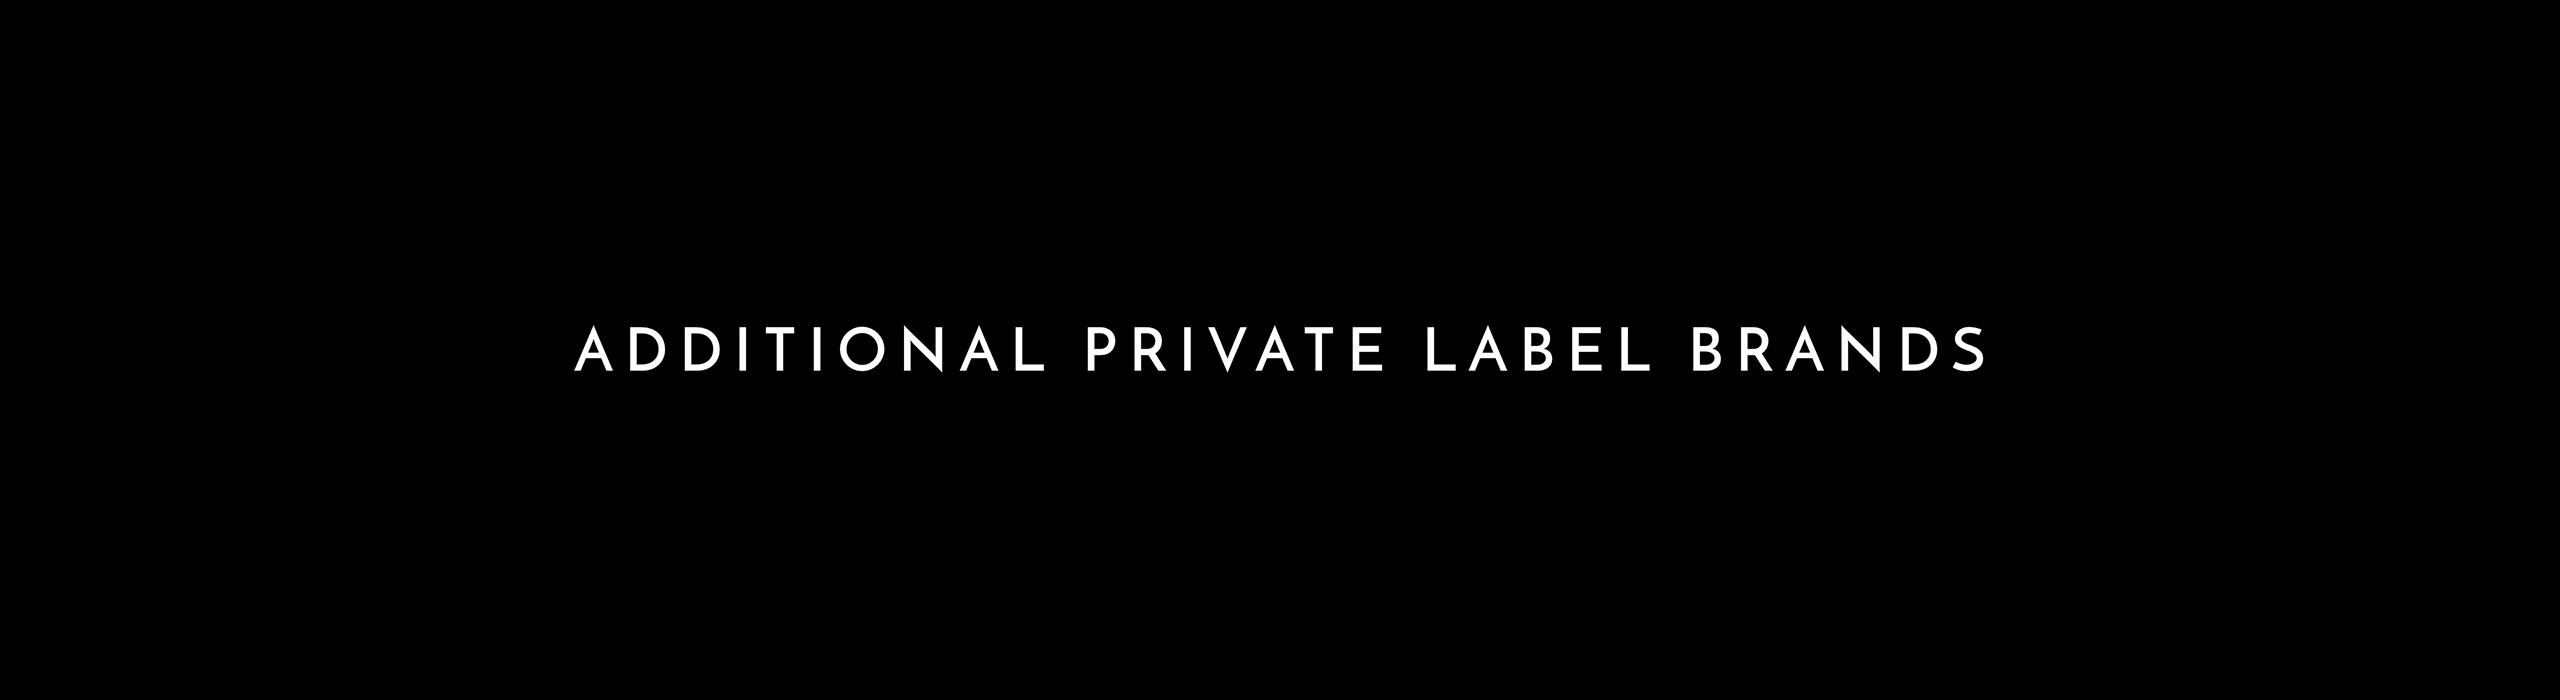 Additional Private Label Brands